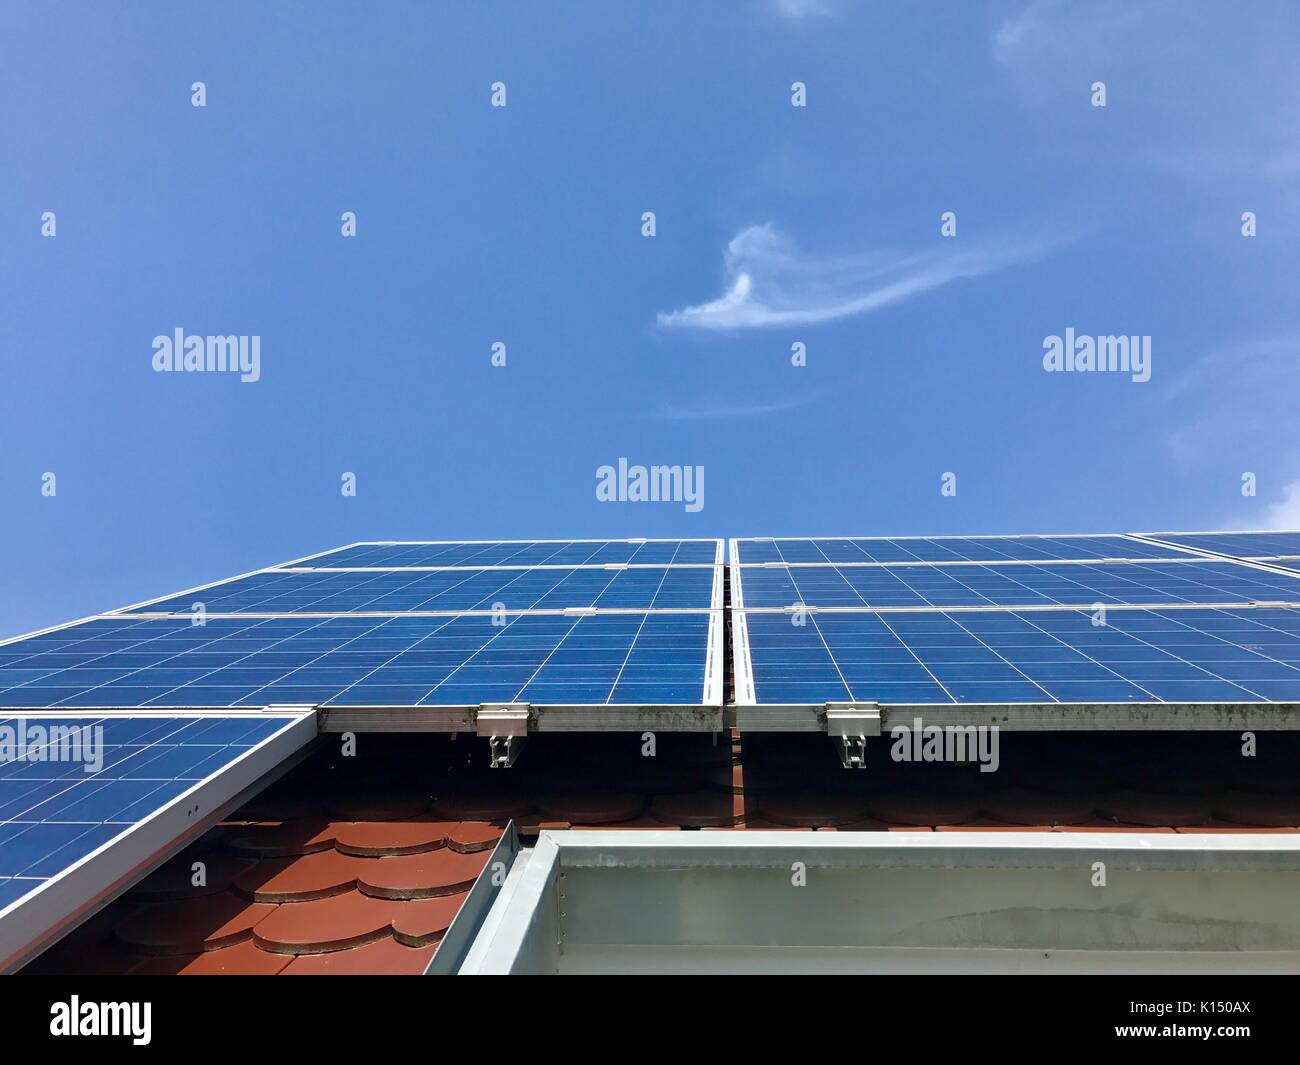 House roof with solar panels on top - Stock Image